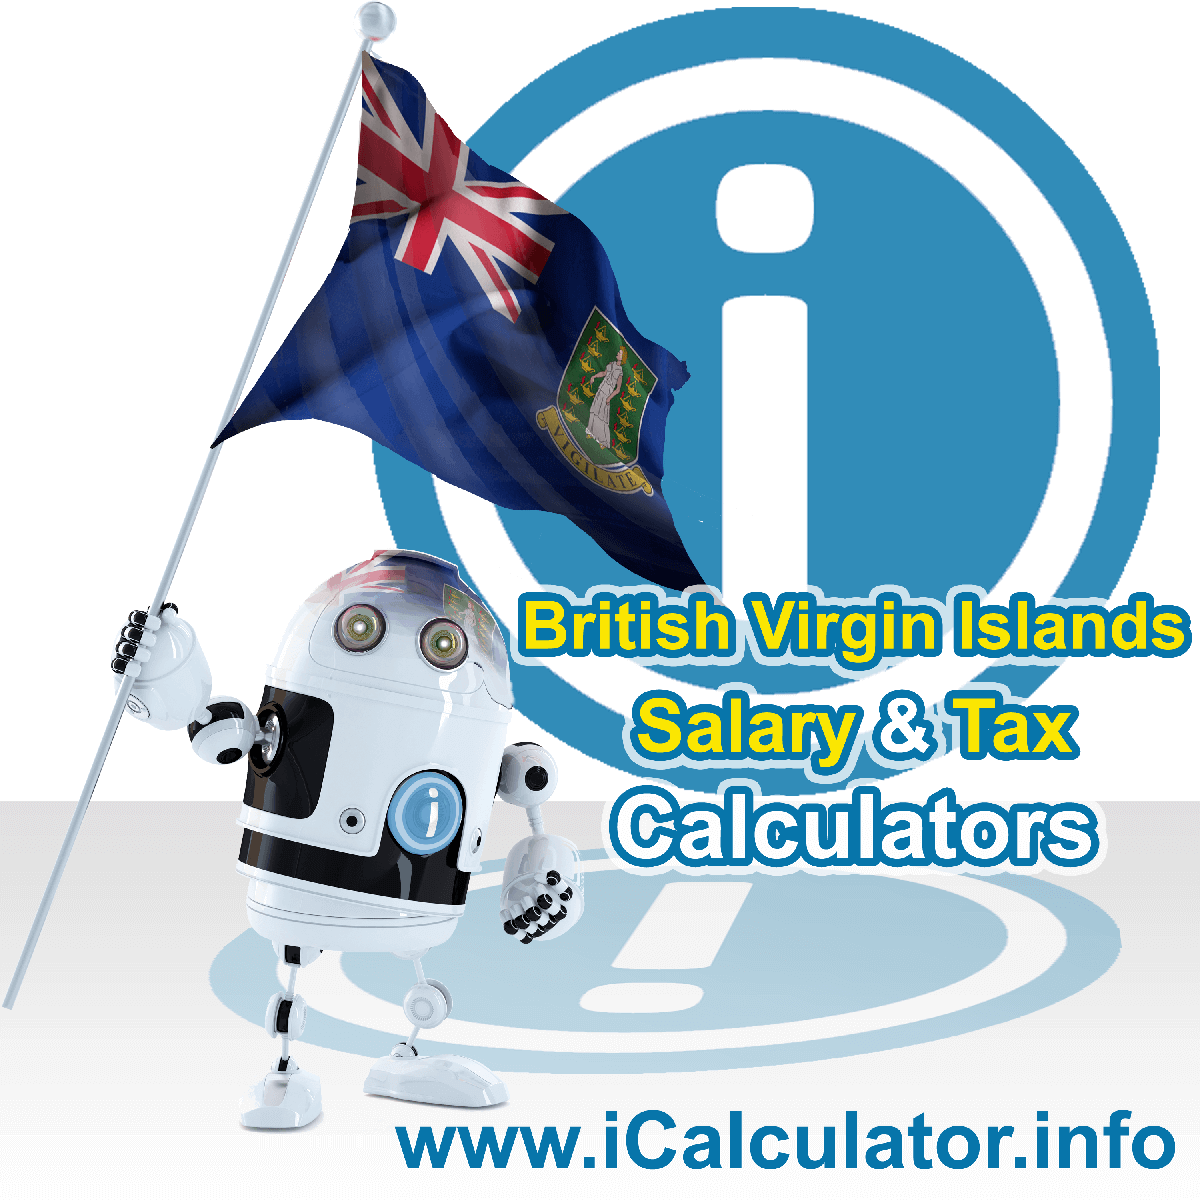 British Virgin Islands Salary Calculator. This image shows the British Virgin Islandsese flag and information relating to the tax formula for the British Virgin Islands Tax Calculator